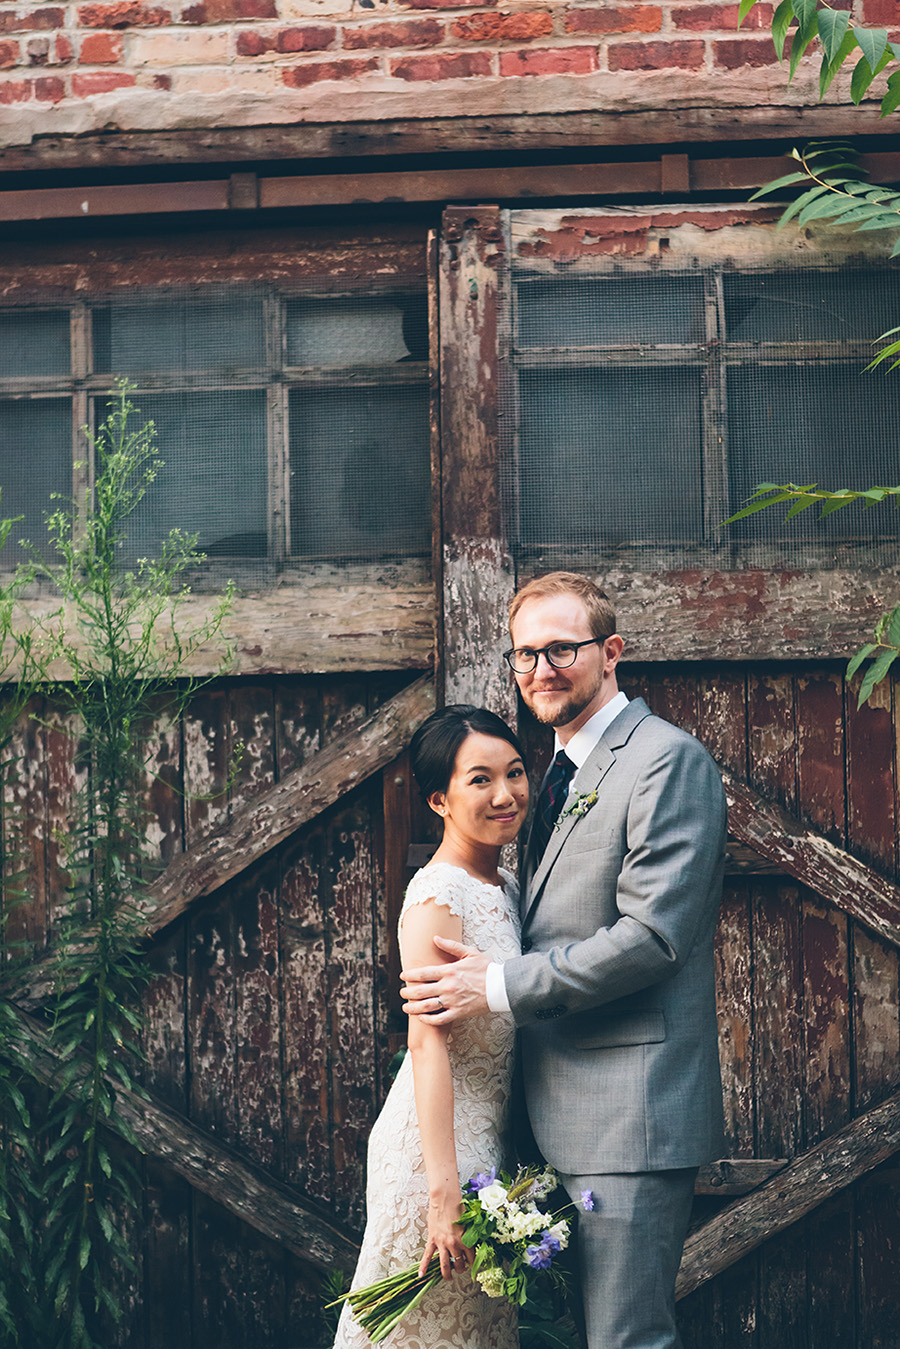 NEW-YORK-CITY-WEDDING-PHOTOGRAPHER-VINEGAR-HILL-HOUSE-INTIMATE-DUMBO-WEDDING-ELOPEMENT-MANHATTAN-BROOKLYN-WEDDING-PHOTOGRAPHY-0030.jpg